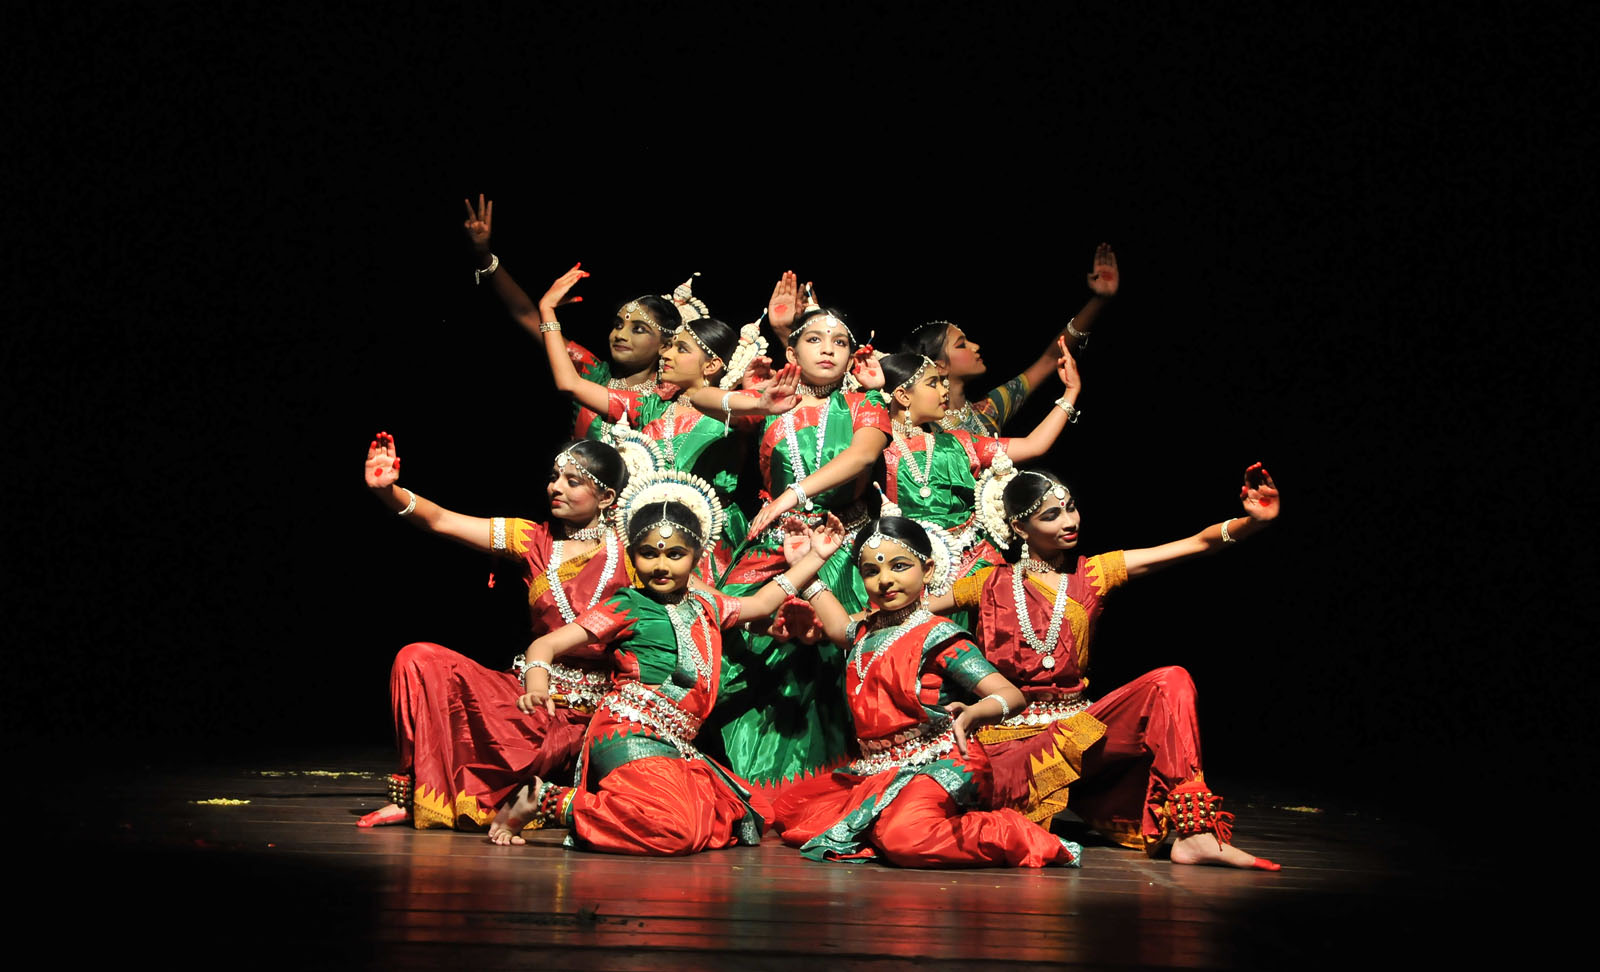 Discovered the therapy to the trafficking victims- Indian classical Dance has that Magic